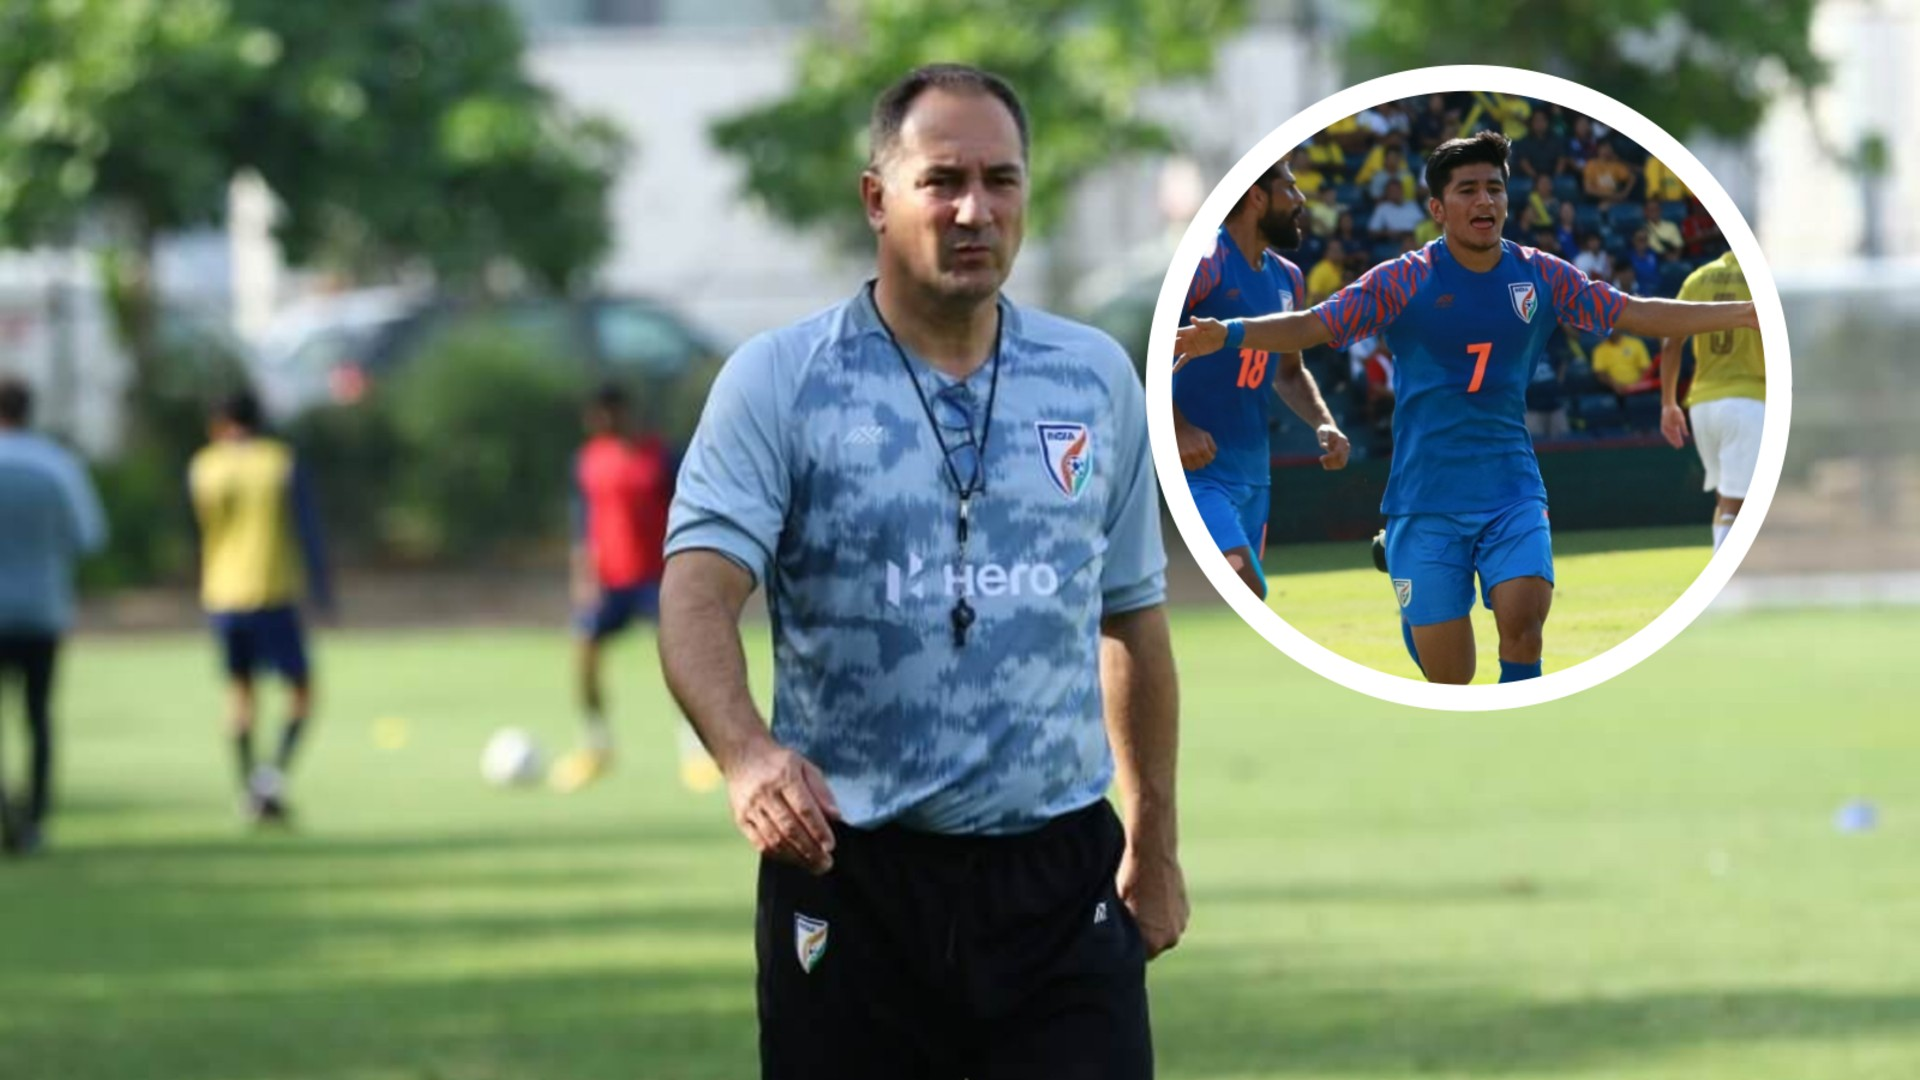 'Igor Stimac is a very positive coach' - Anirudh Thapa reveals how the India head coach is different from others